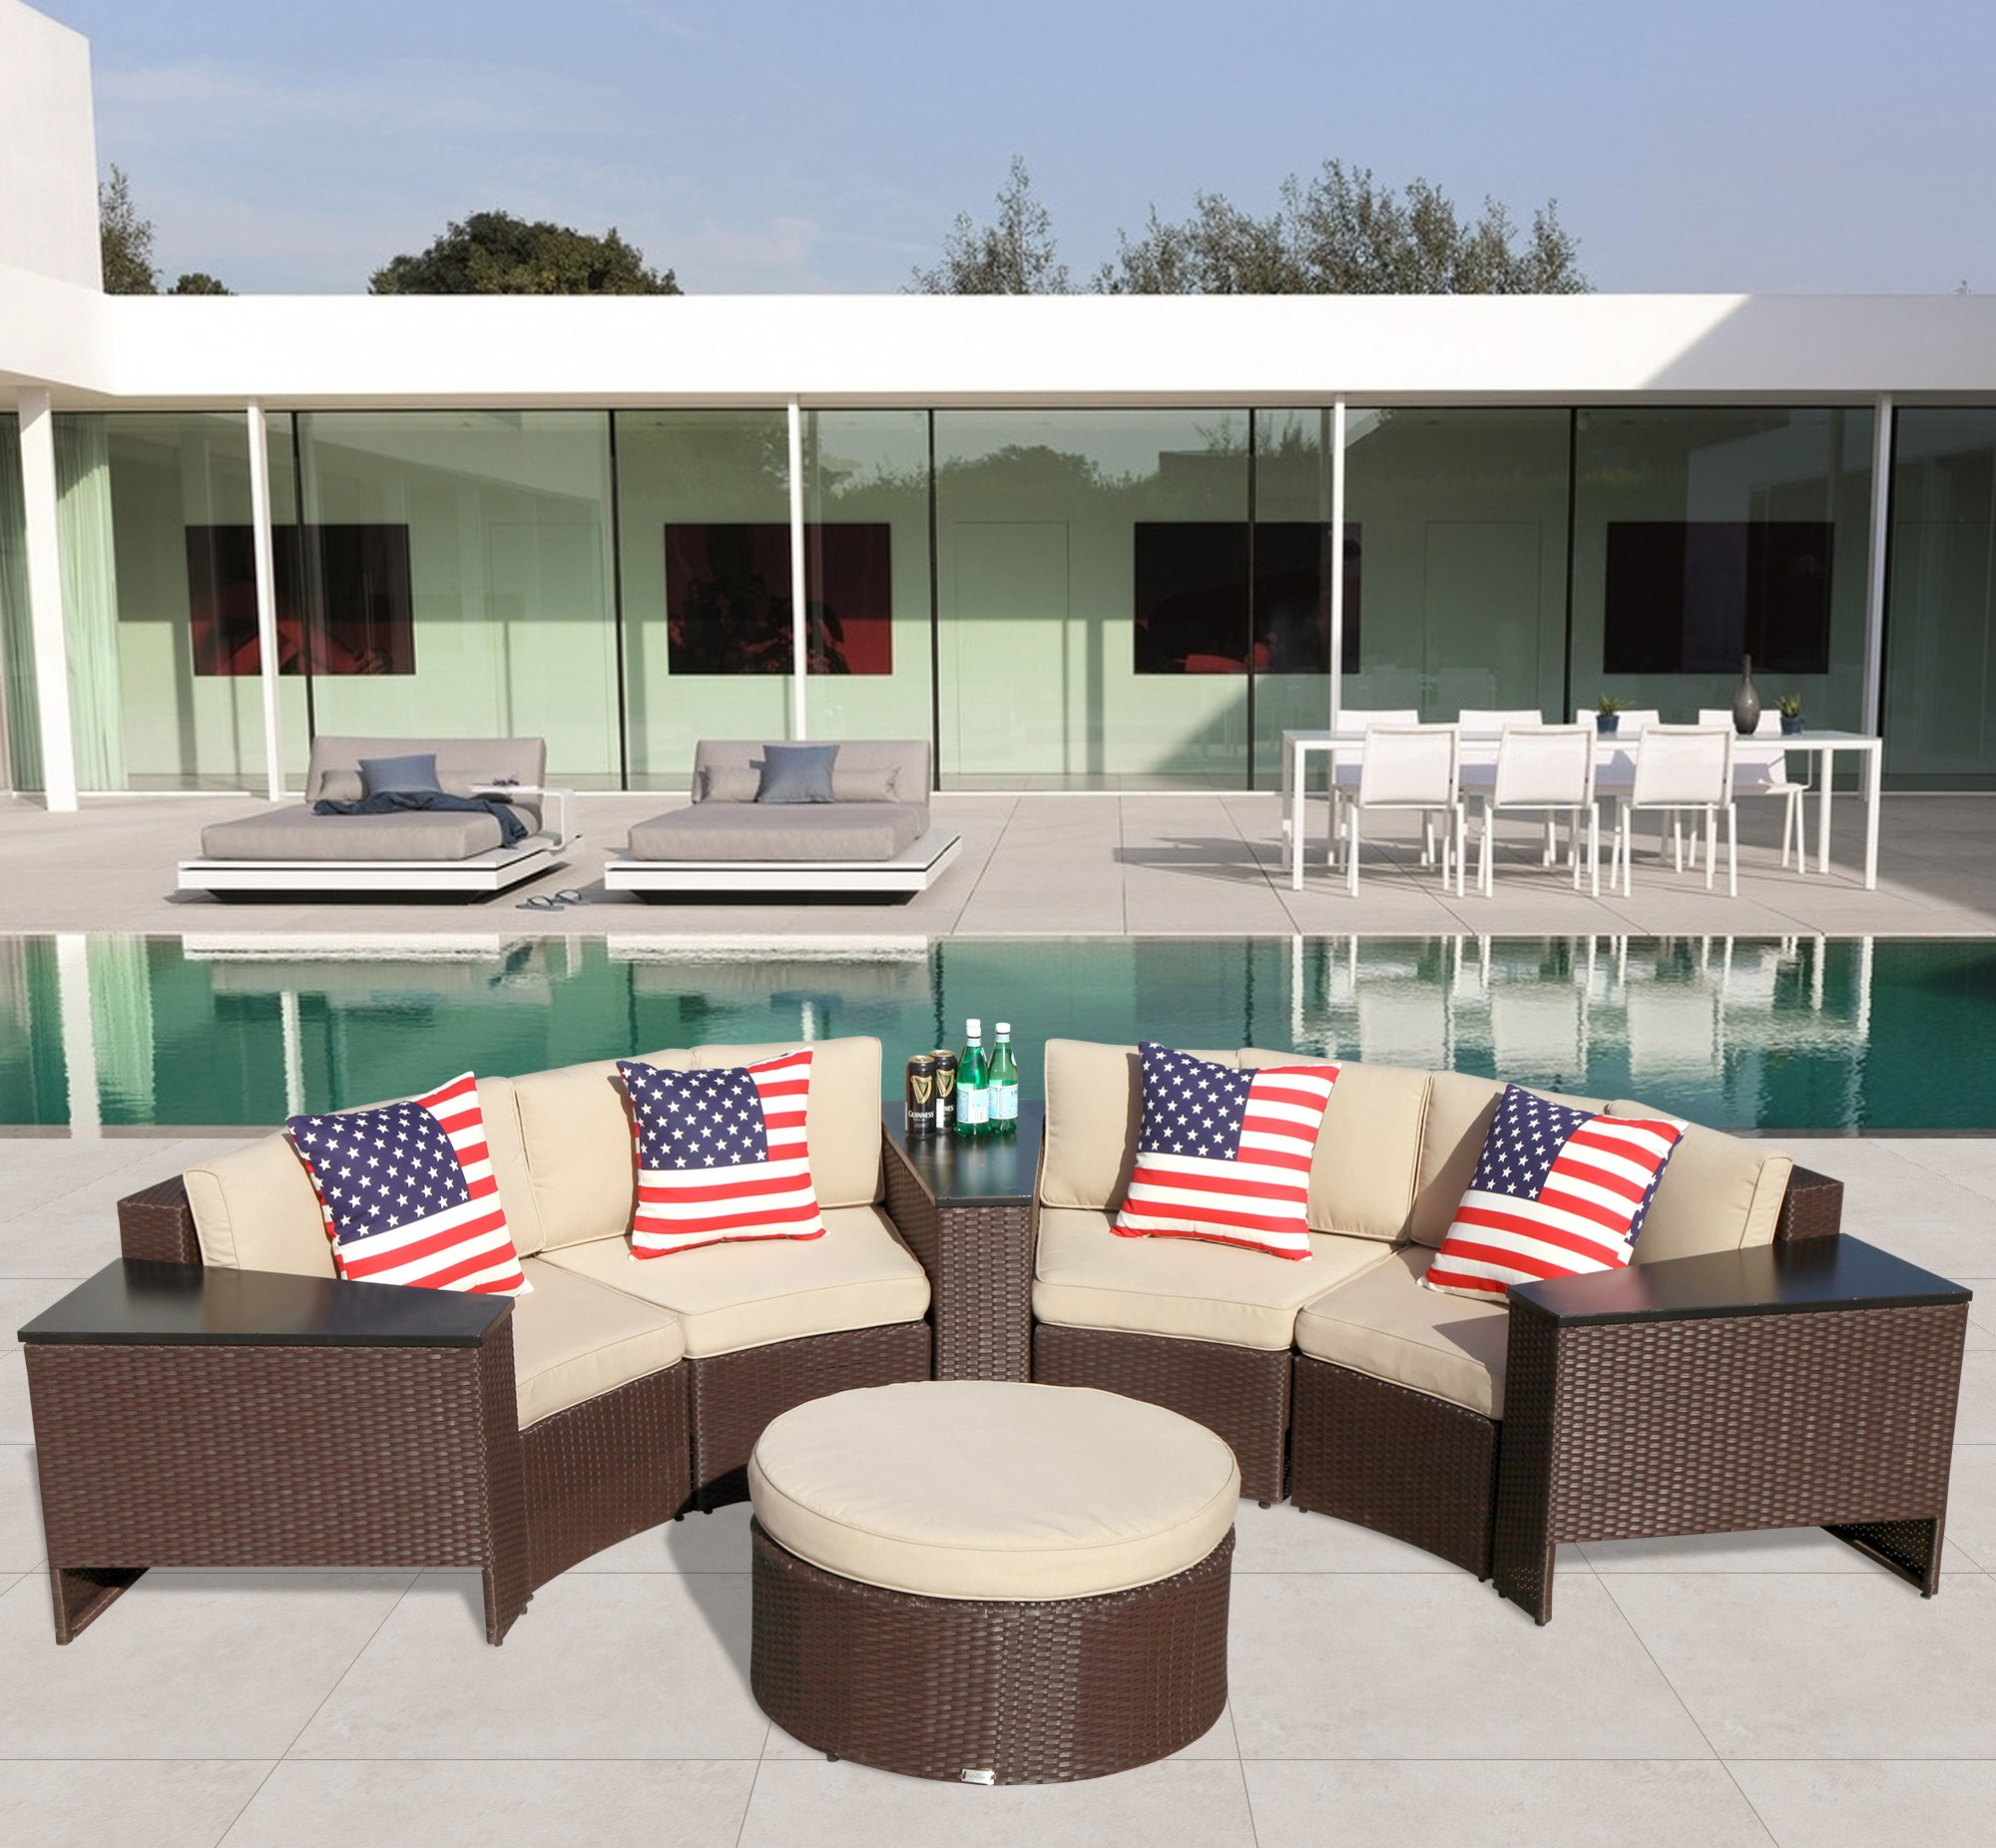 PATIOROMA Outdoor Patio Furniture Set Wicker 8 Piece Semicircular Sectional Sofa Seating Set with Ottoman, Beige Seat and Back Cushions, Aluminium Frame, Brown PE Wicker